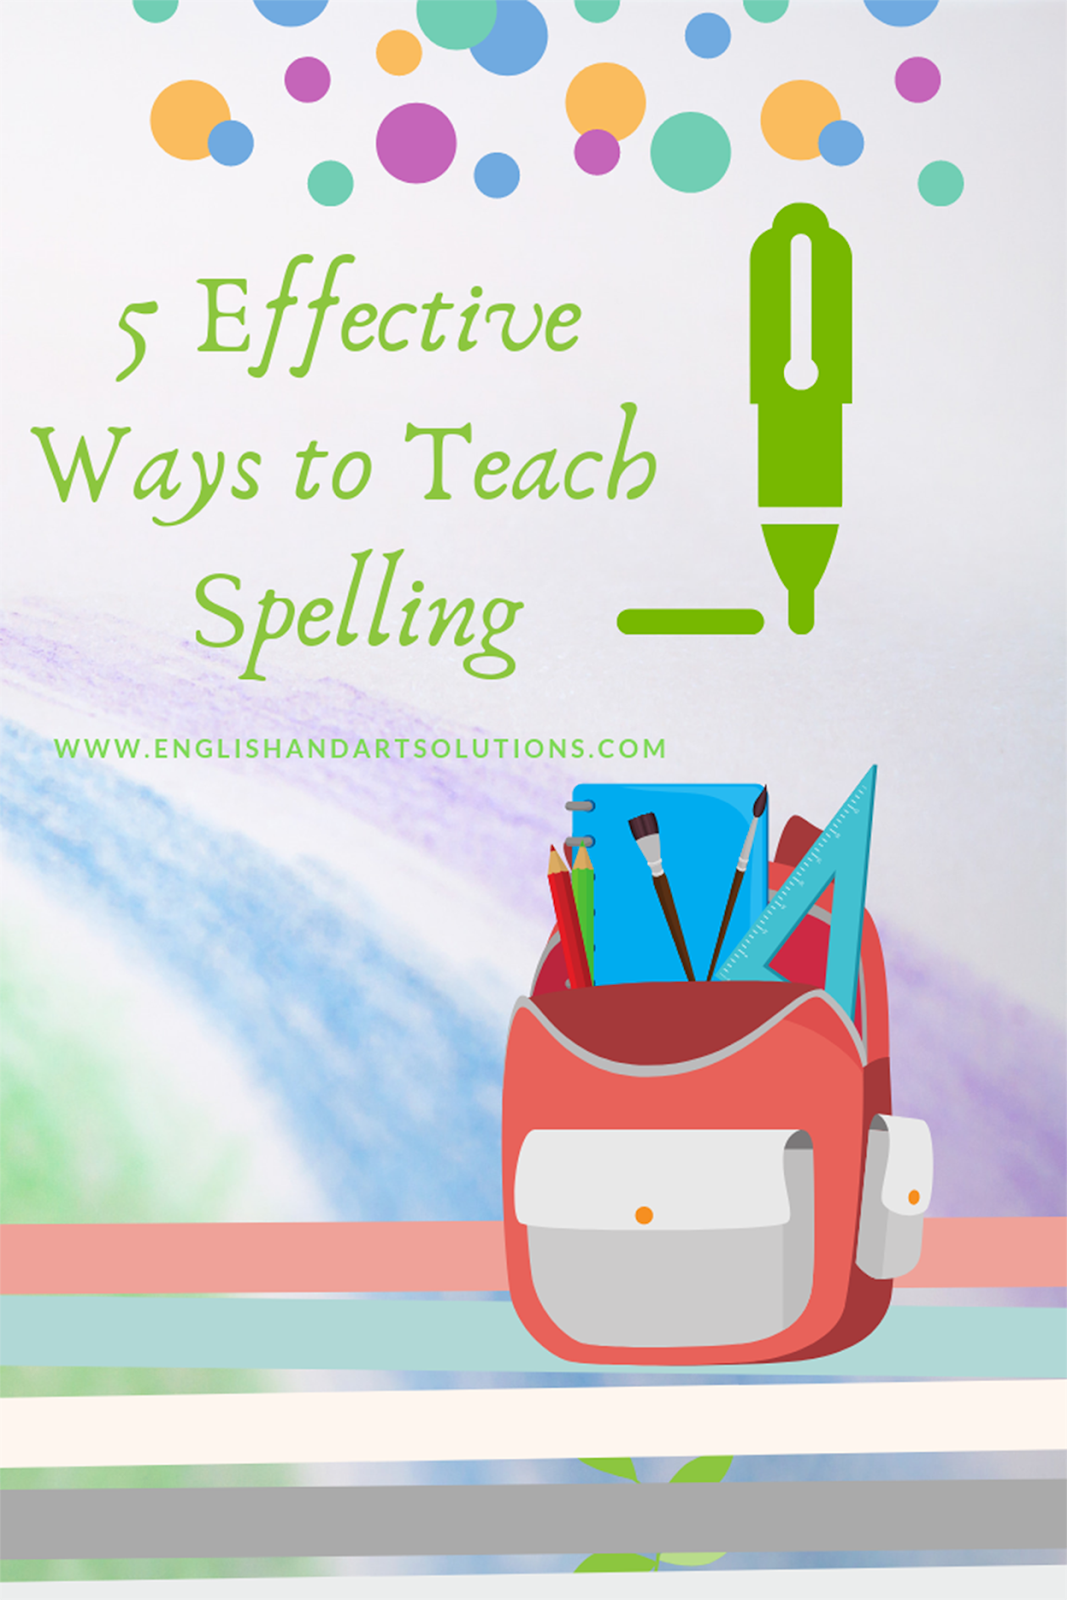 strategies_teaching_spelling